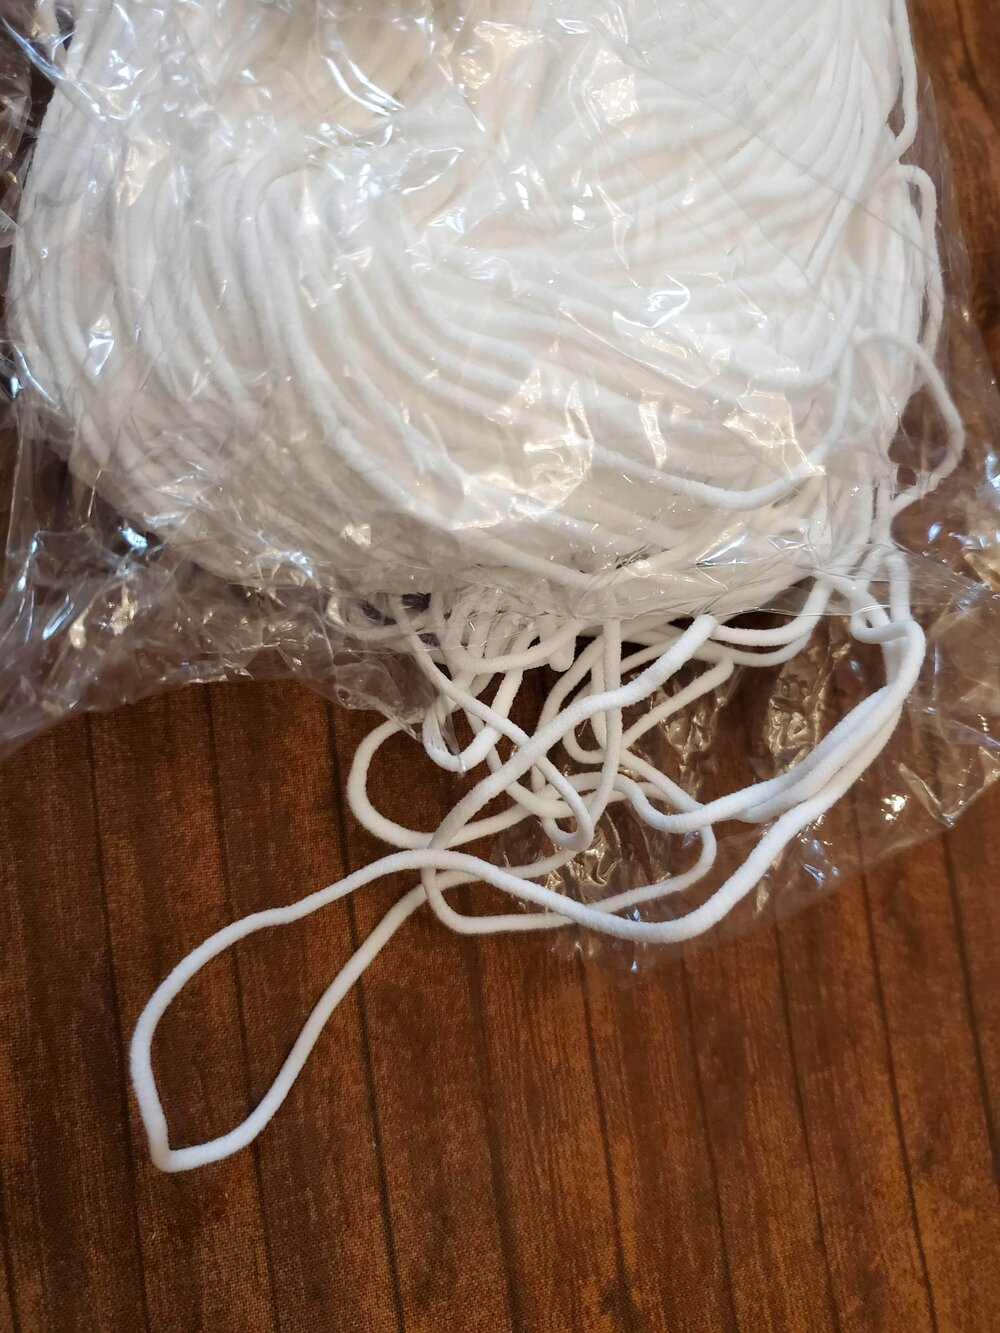 White Elastic Cording - 1/8 - sold by the yard